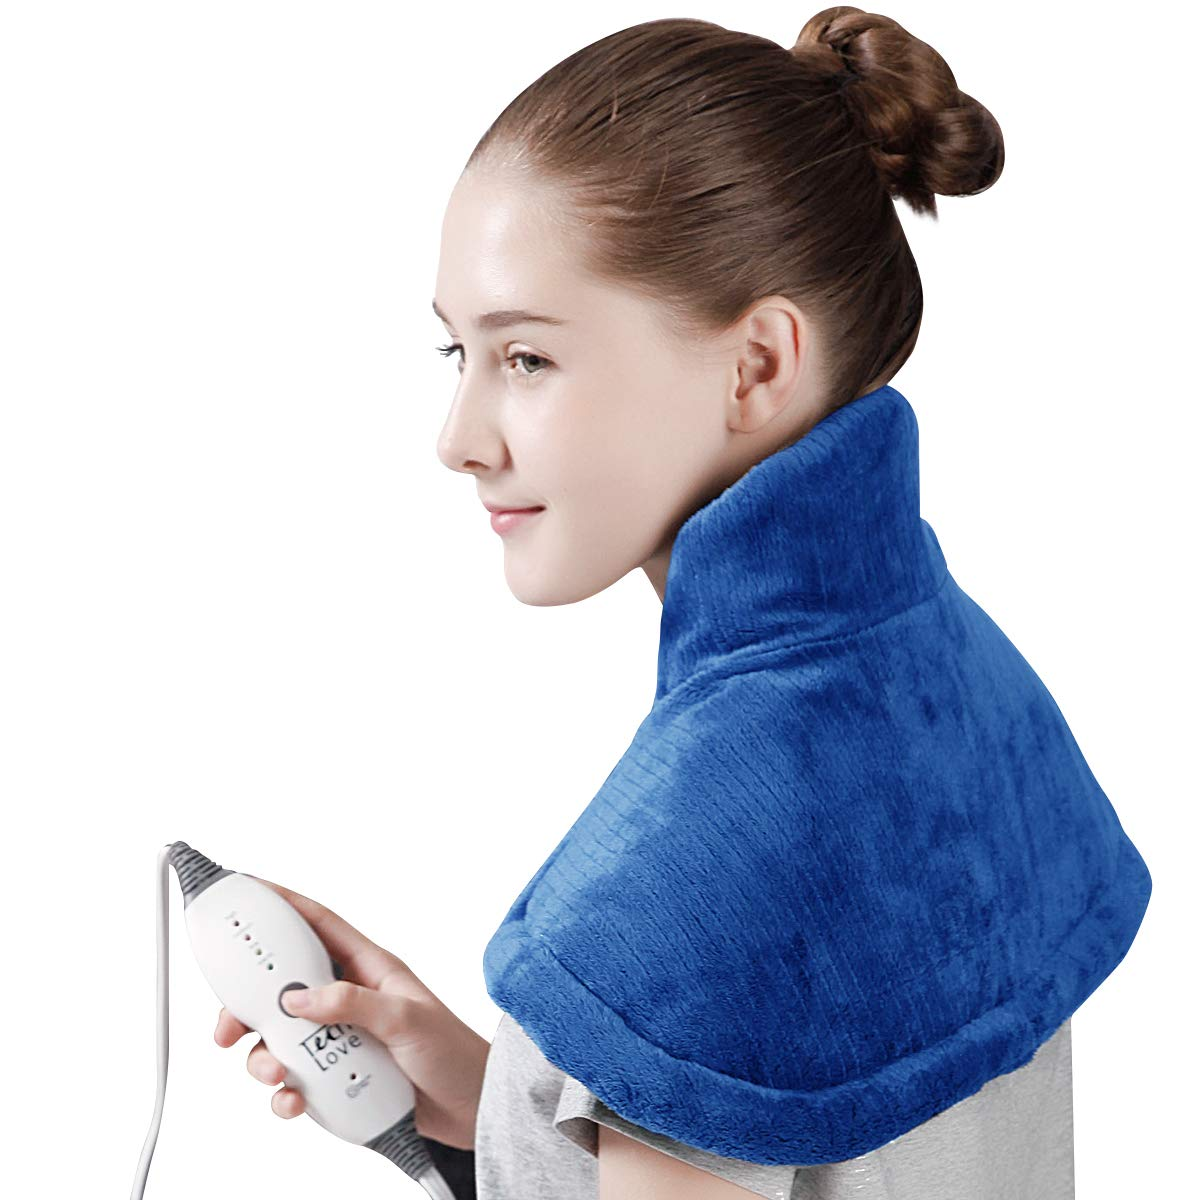 """TechLove Electric Heating Pad for Neck Shoulder and Upper Back Pain Relief Moist/Dry Heated Pad with Auto Shut Off 14"""" x 22"""" - Blue"""